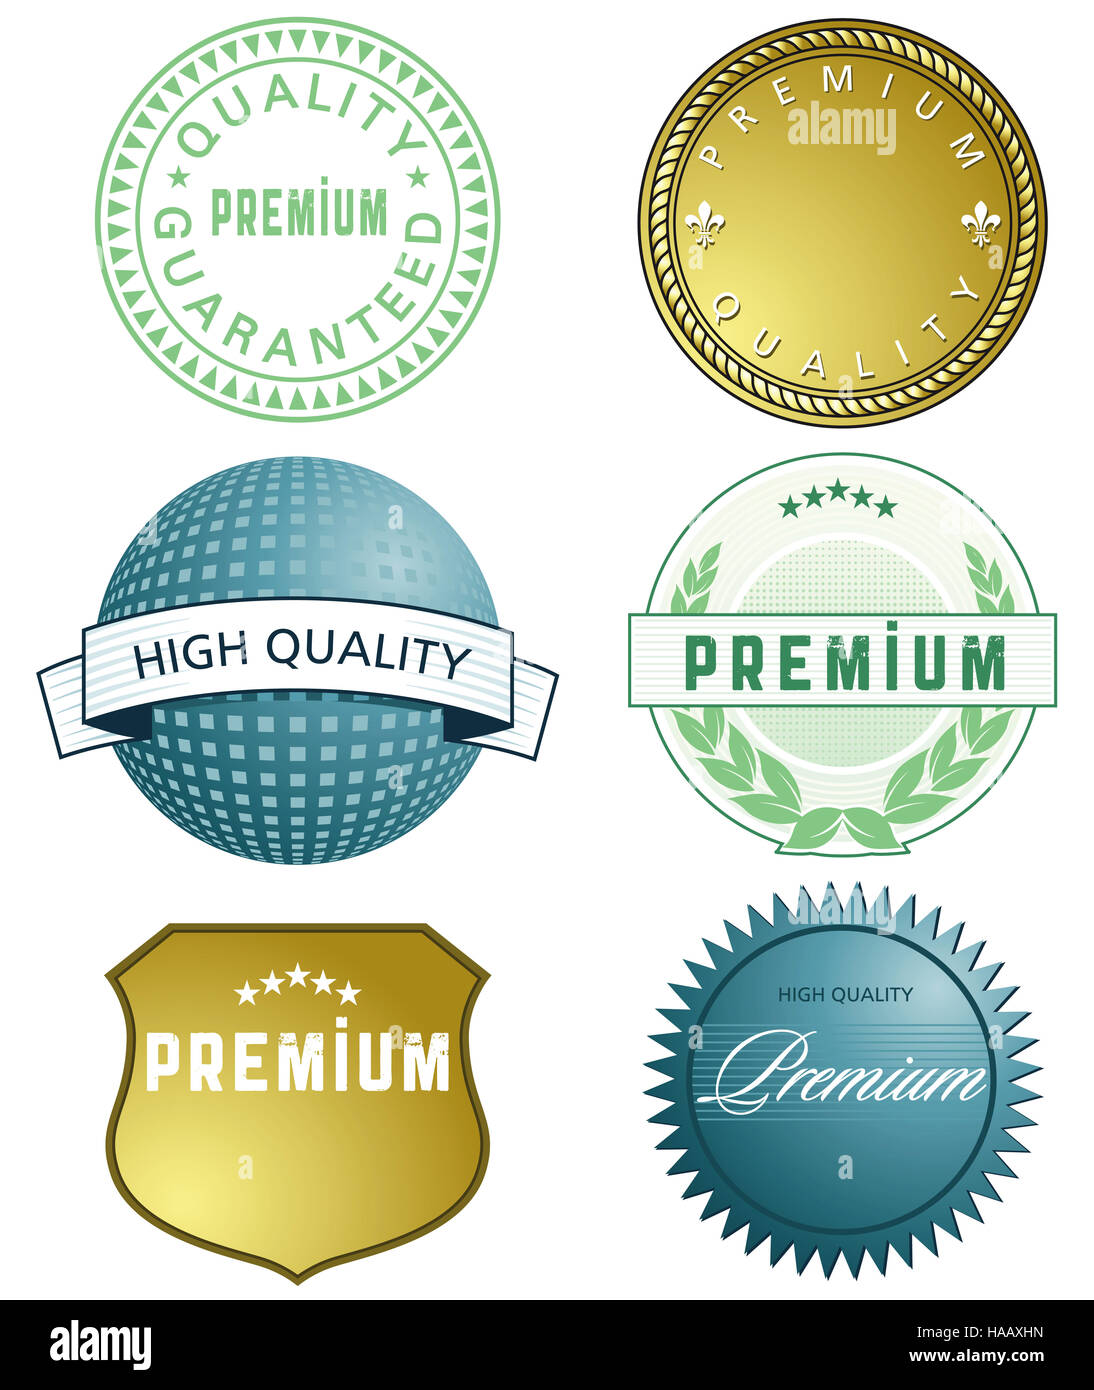 Gold Seal of Approval and emblems - Stock Image